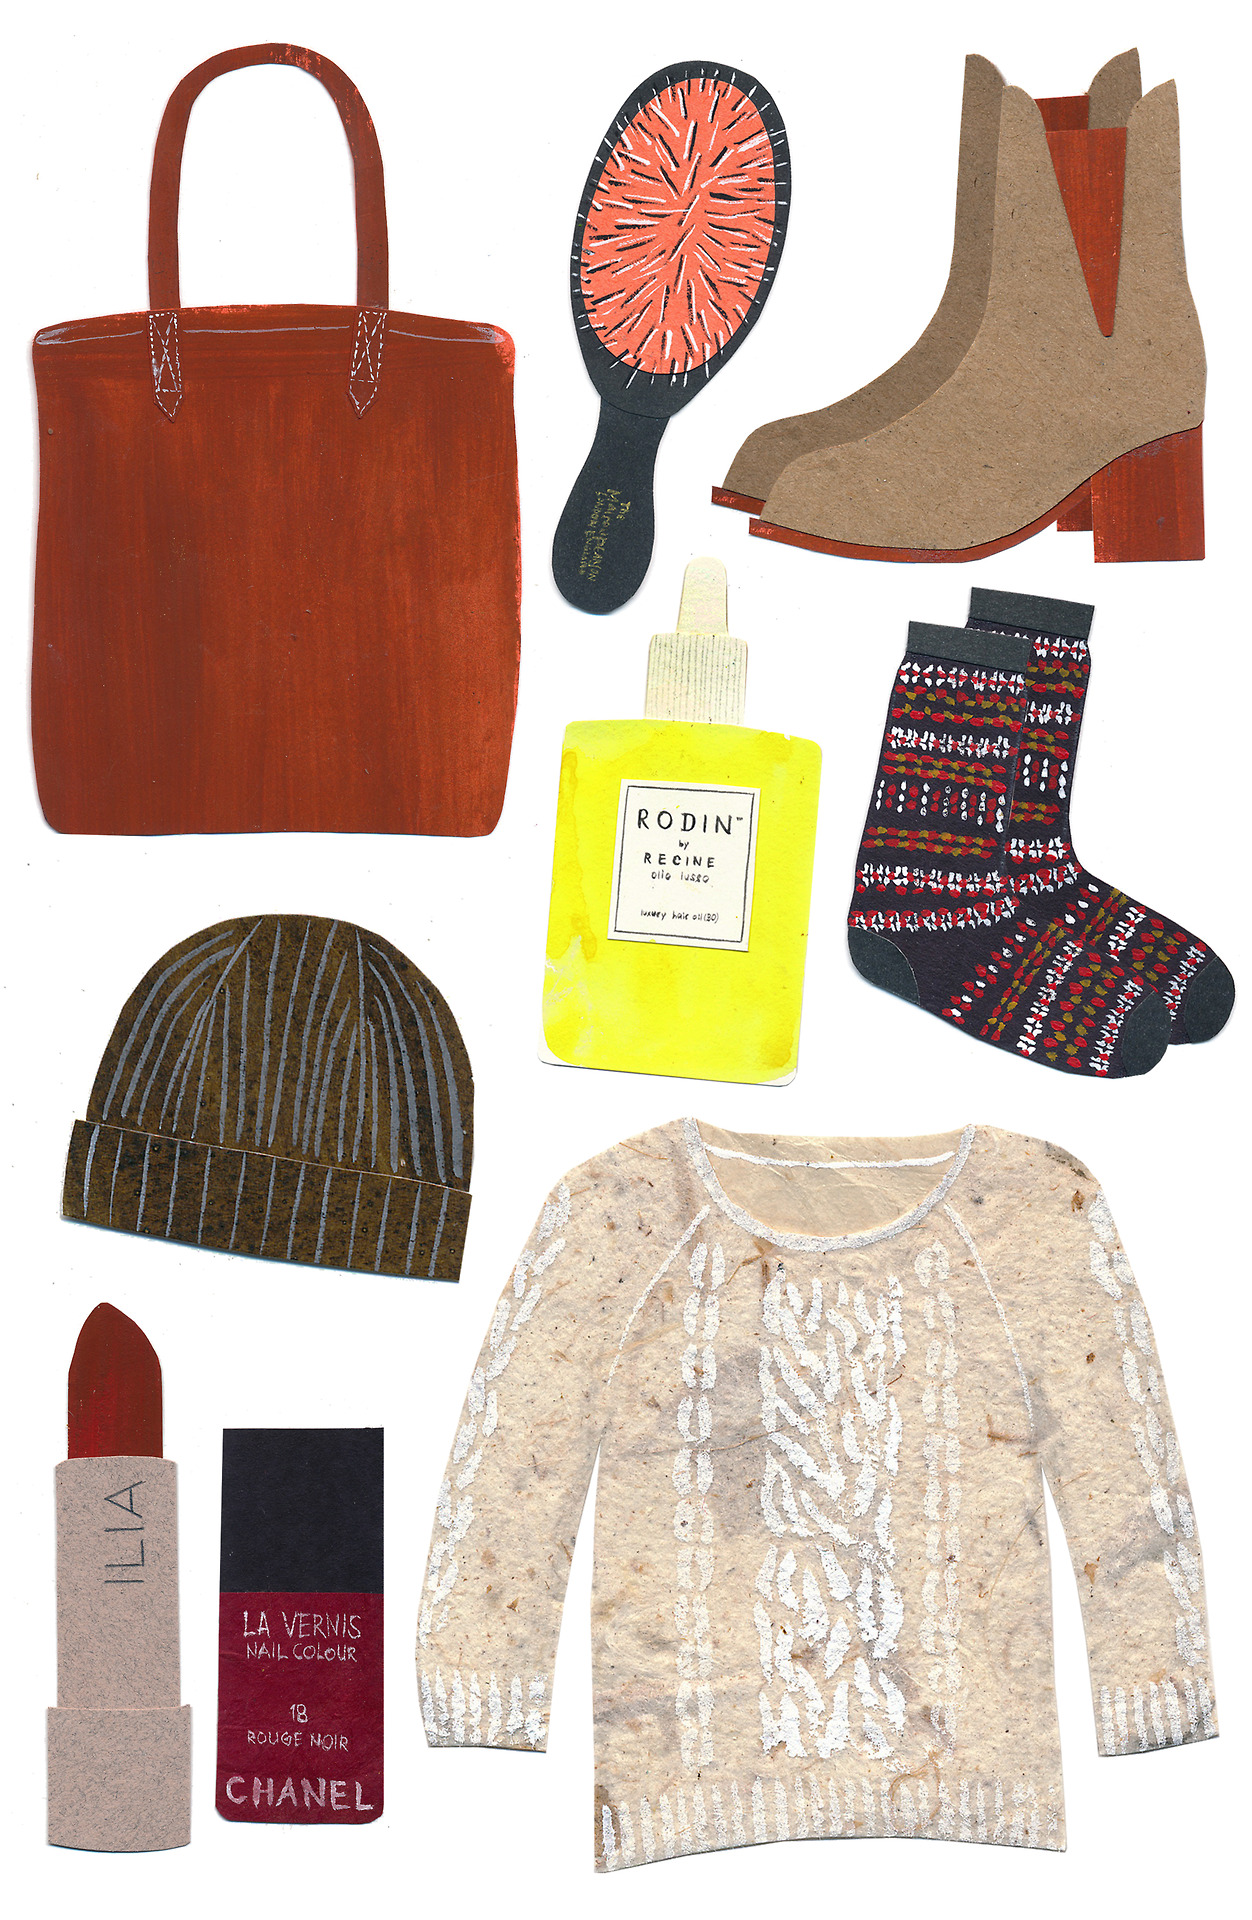 My fall wish list is here! So excited for this season. xo (Left to right) Madewell Transport Tote, Mason Pearson Hair Brush, Zara Boots, Rodin Hair Oil, Bleuforet Wool Socks, Steven Alan Beanie, ILIA lipstick, Chanel Rouge Noir, Nili Lotan Cable Raglan Sweater In case you missed my summer wish list, here it is.